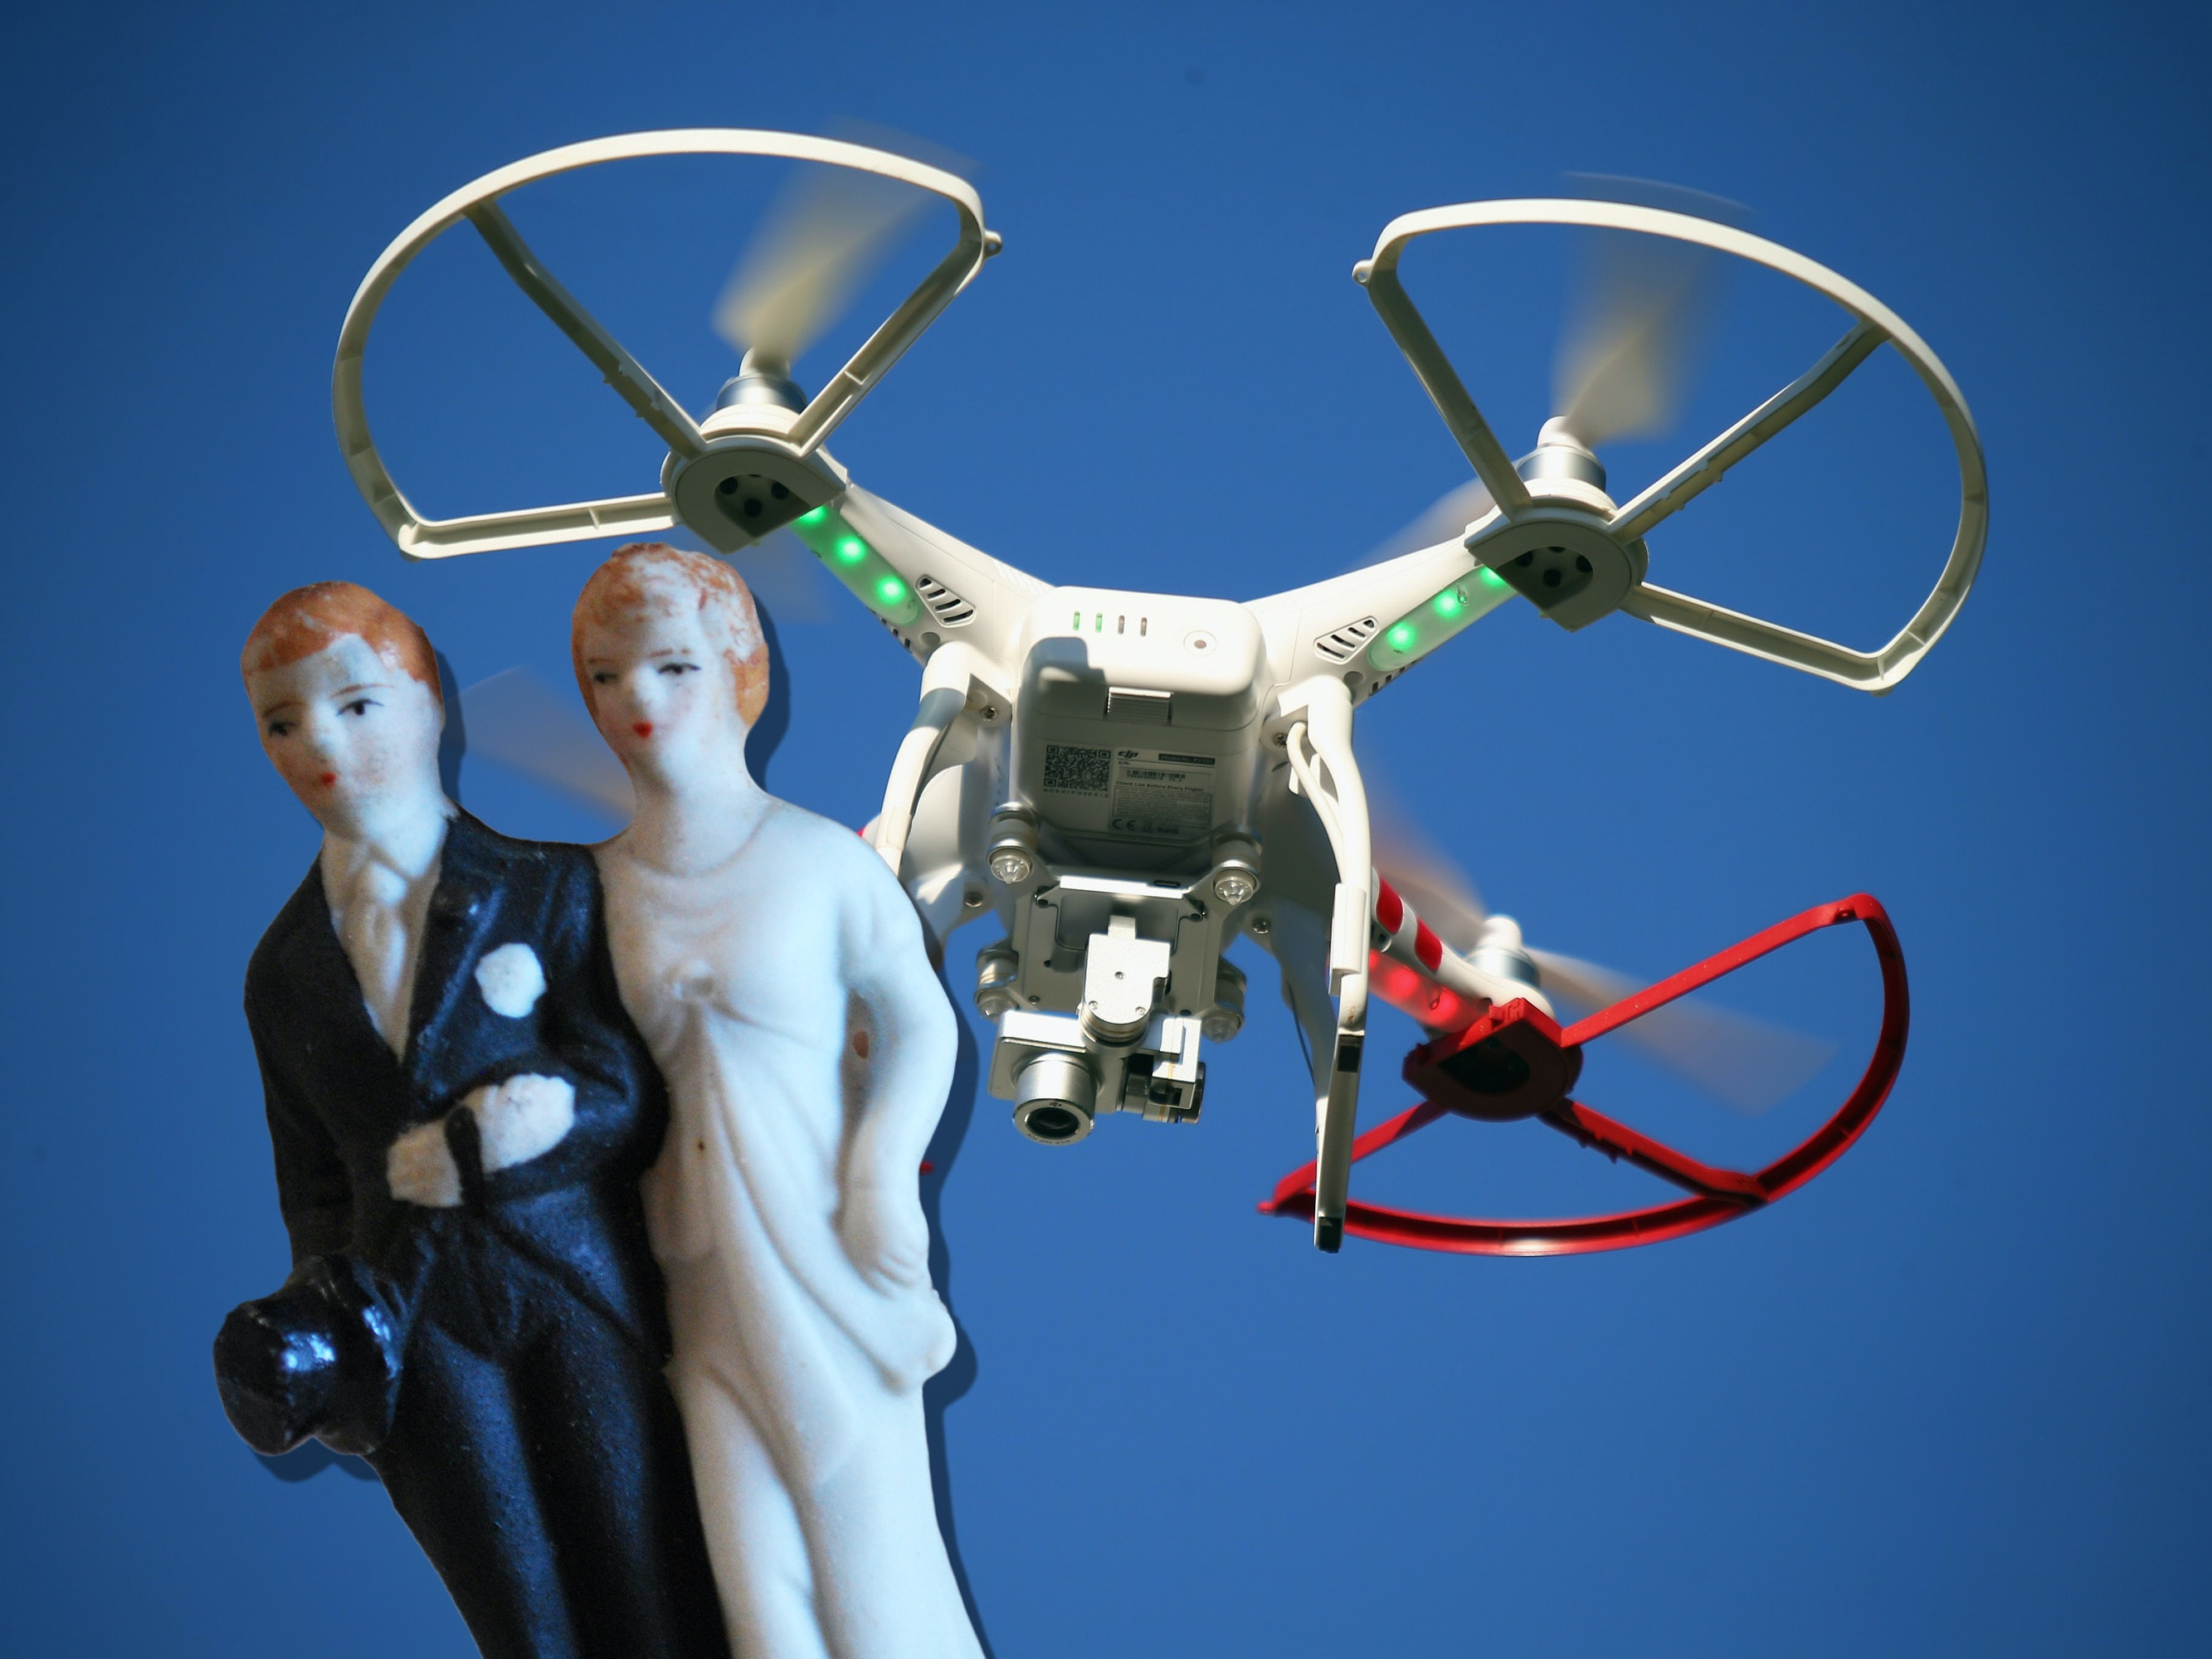 Women Sue Groom After Getting Smacked by Drone at His Wedding